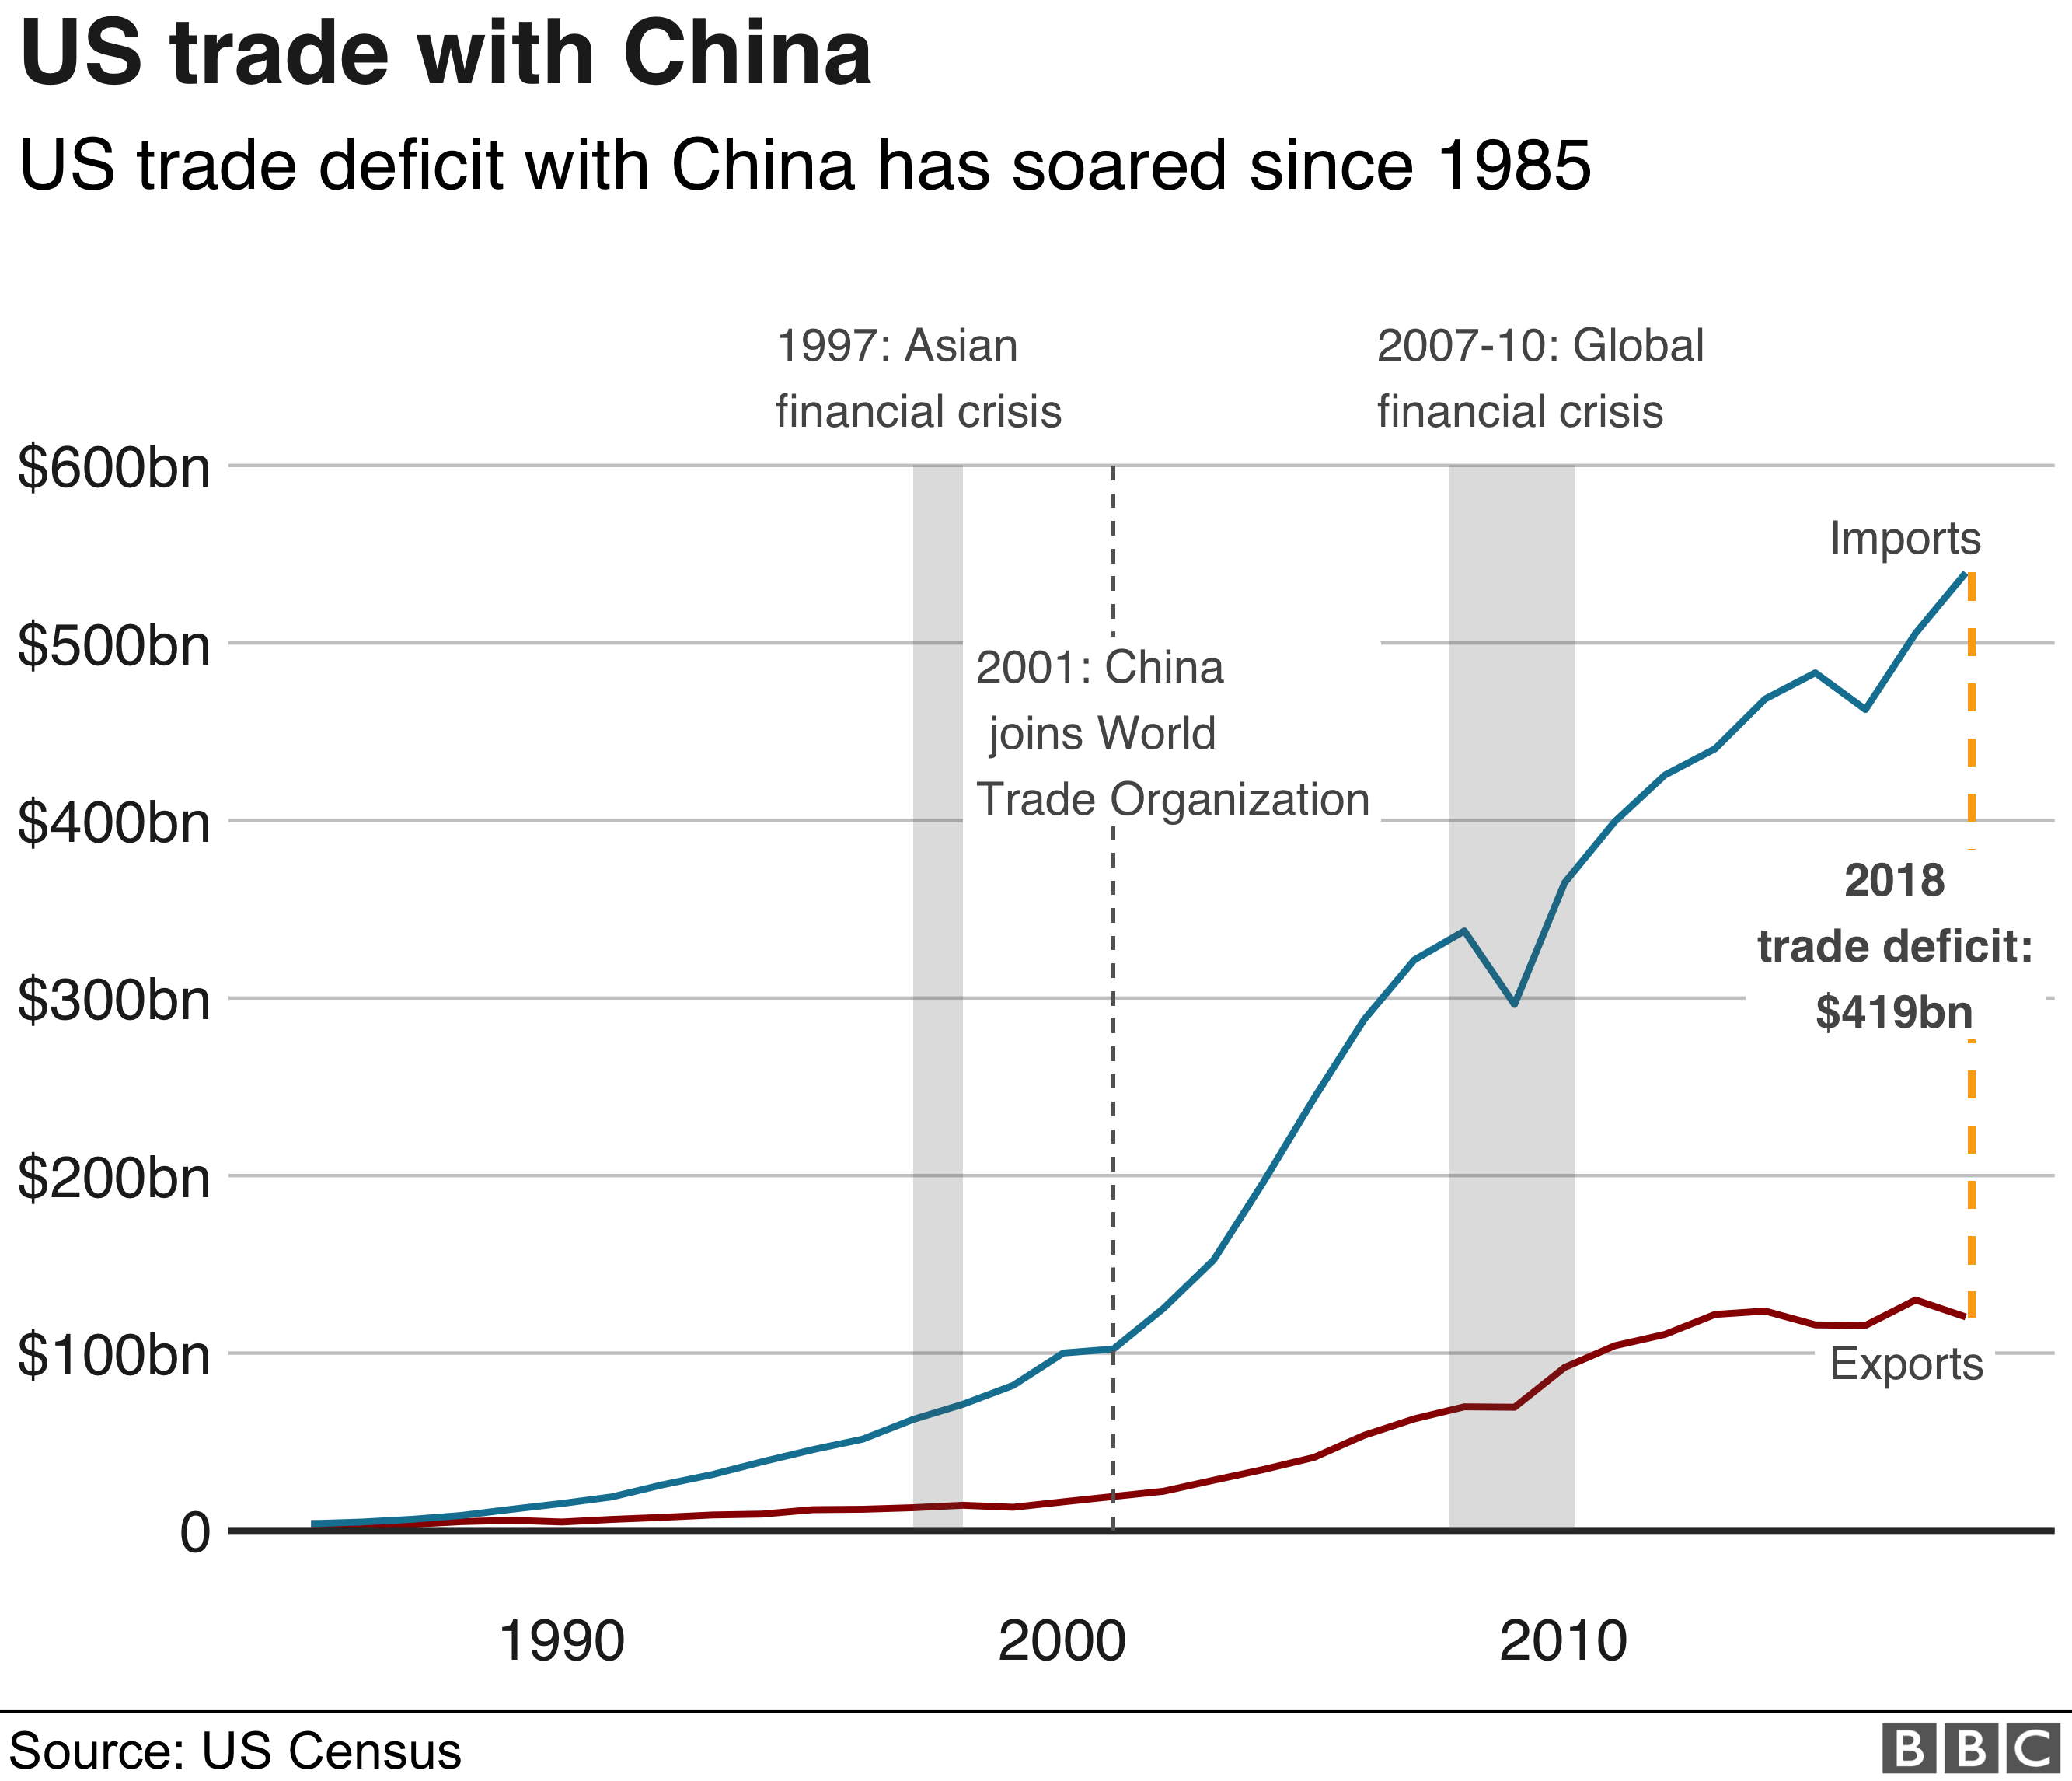 are tariffs on certain goods used to restrict free trade